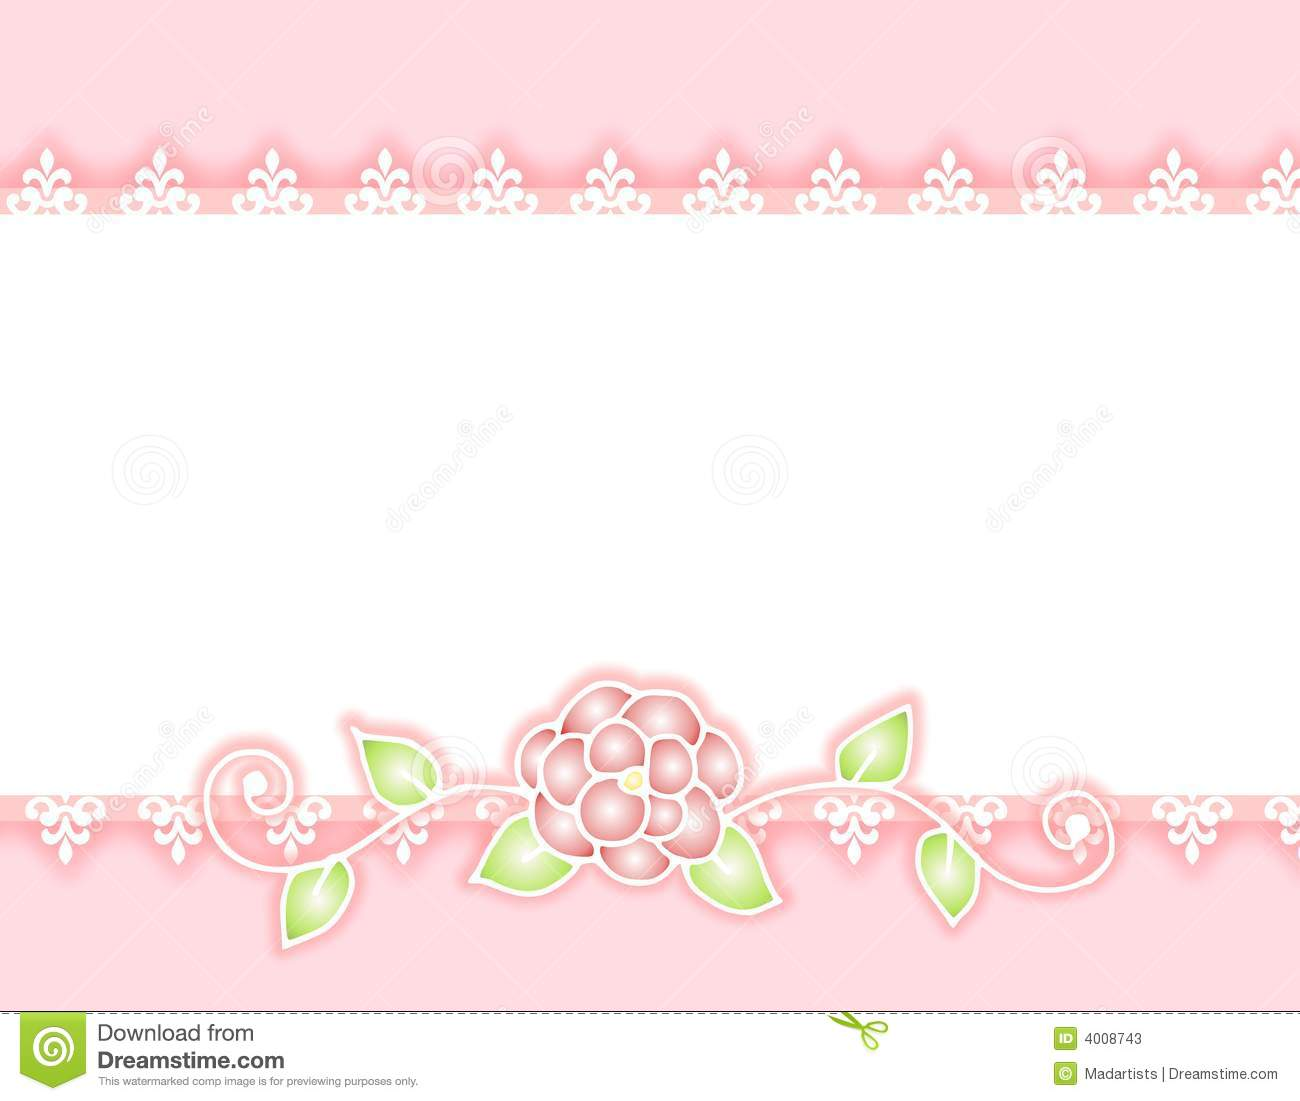 White Lace Border Graphicwhite Lace Pink Ribbon And Rose Border Stock